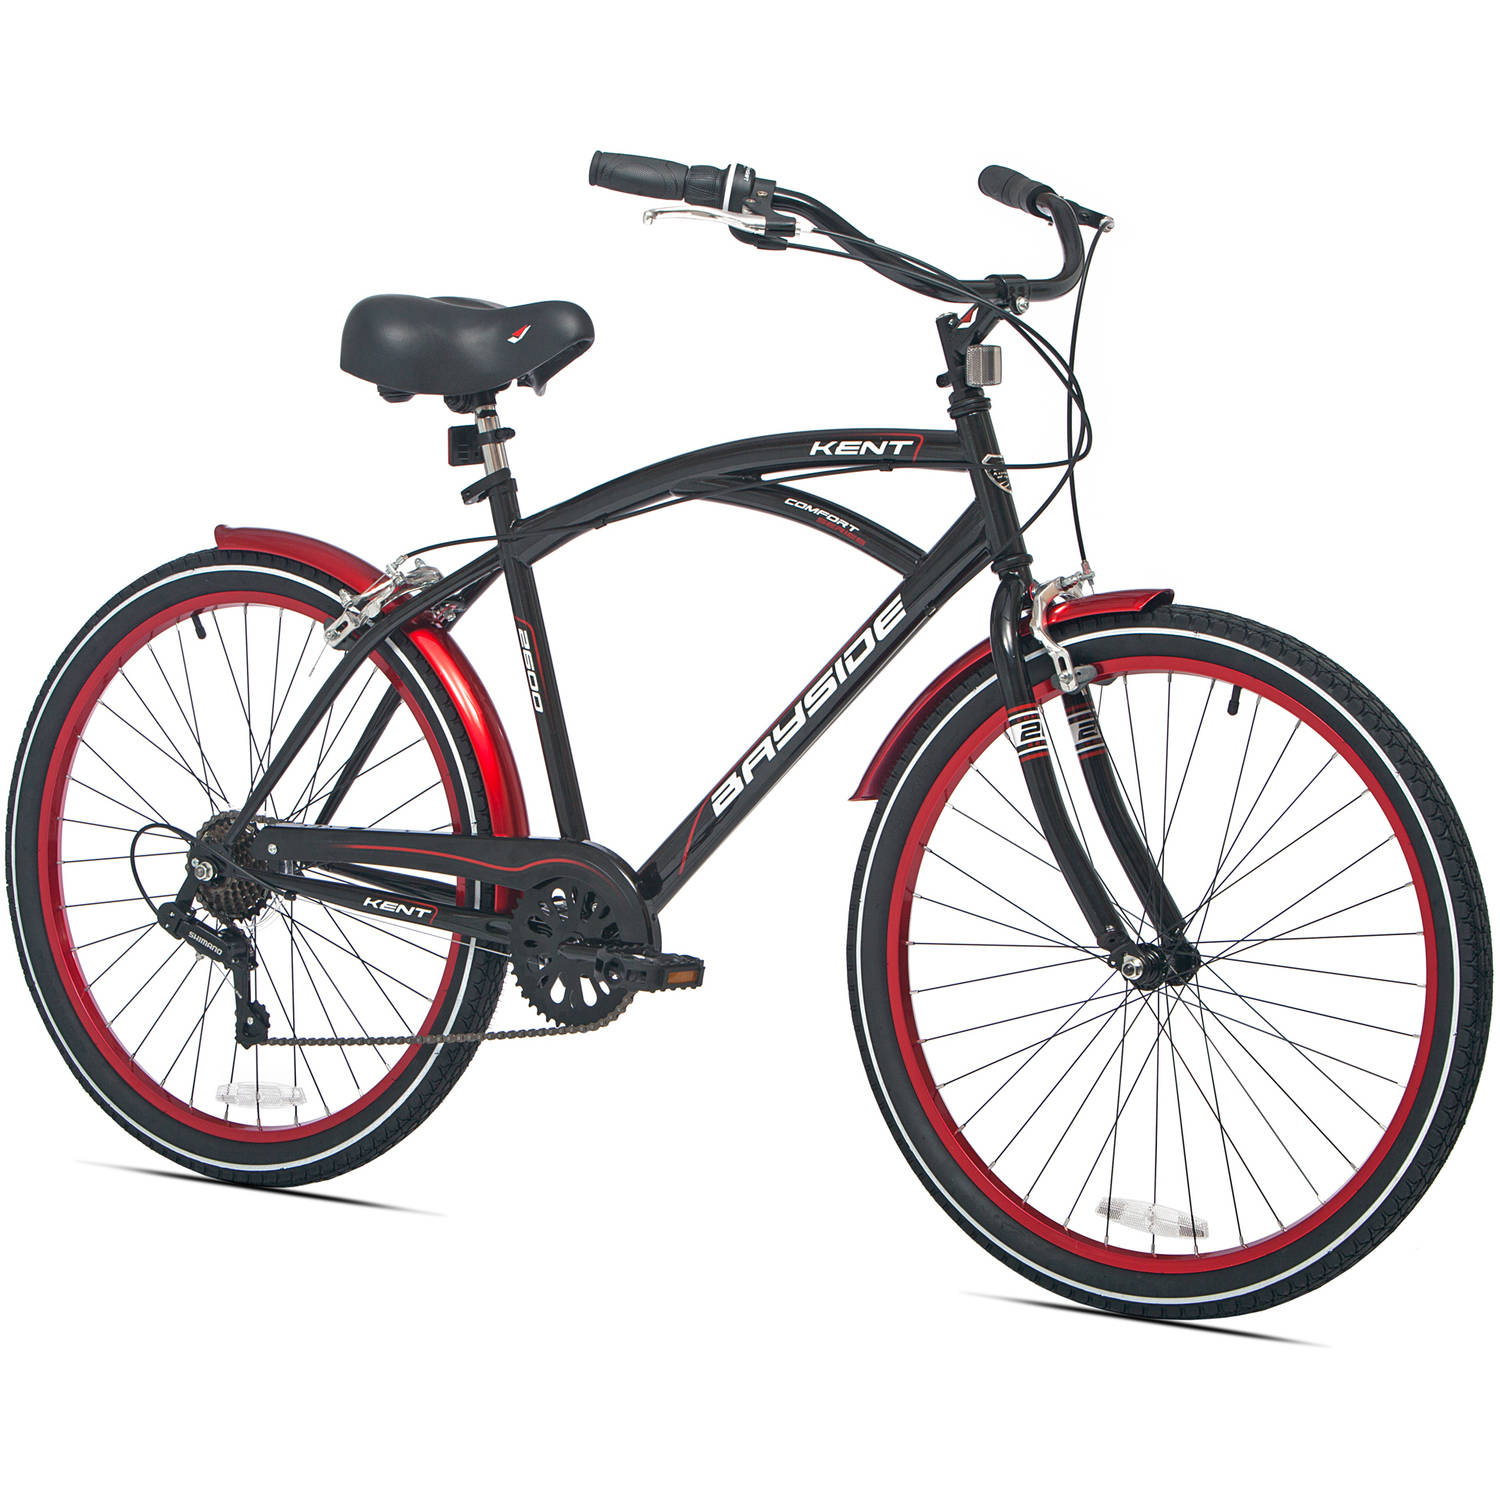 Source:  https://www.walmart.com/ip/26-Men-s-Kent-Bayside-Cruiser-Bike/47443494